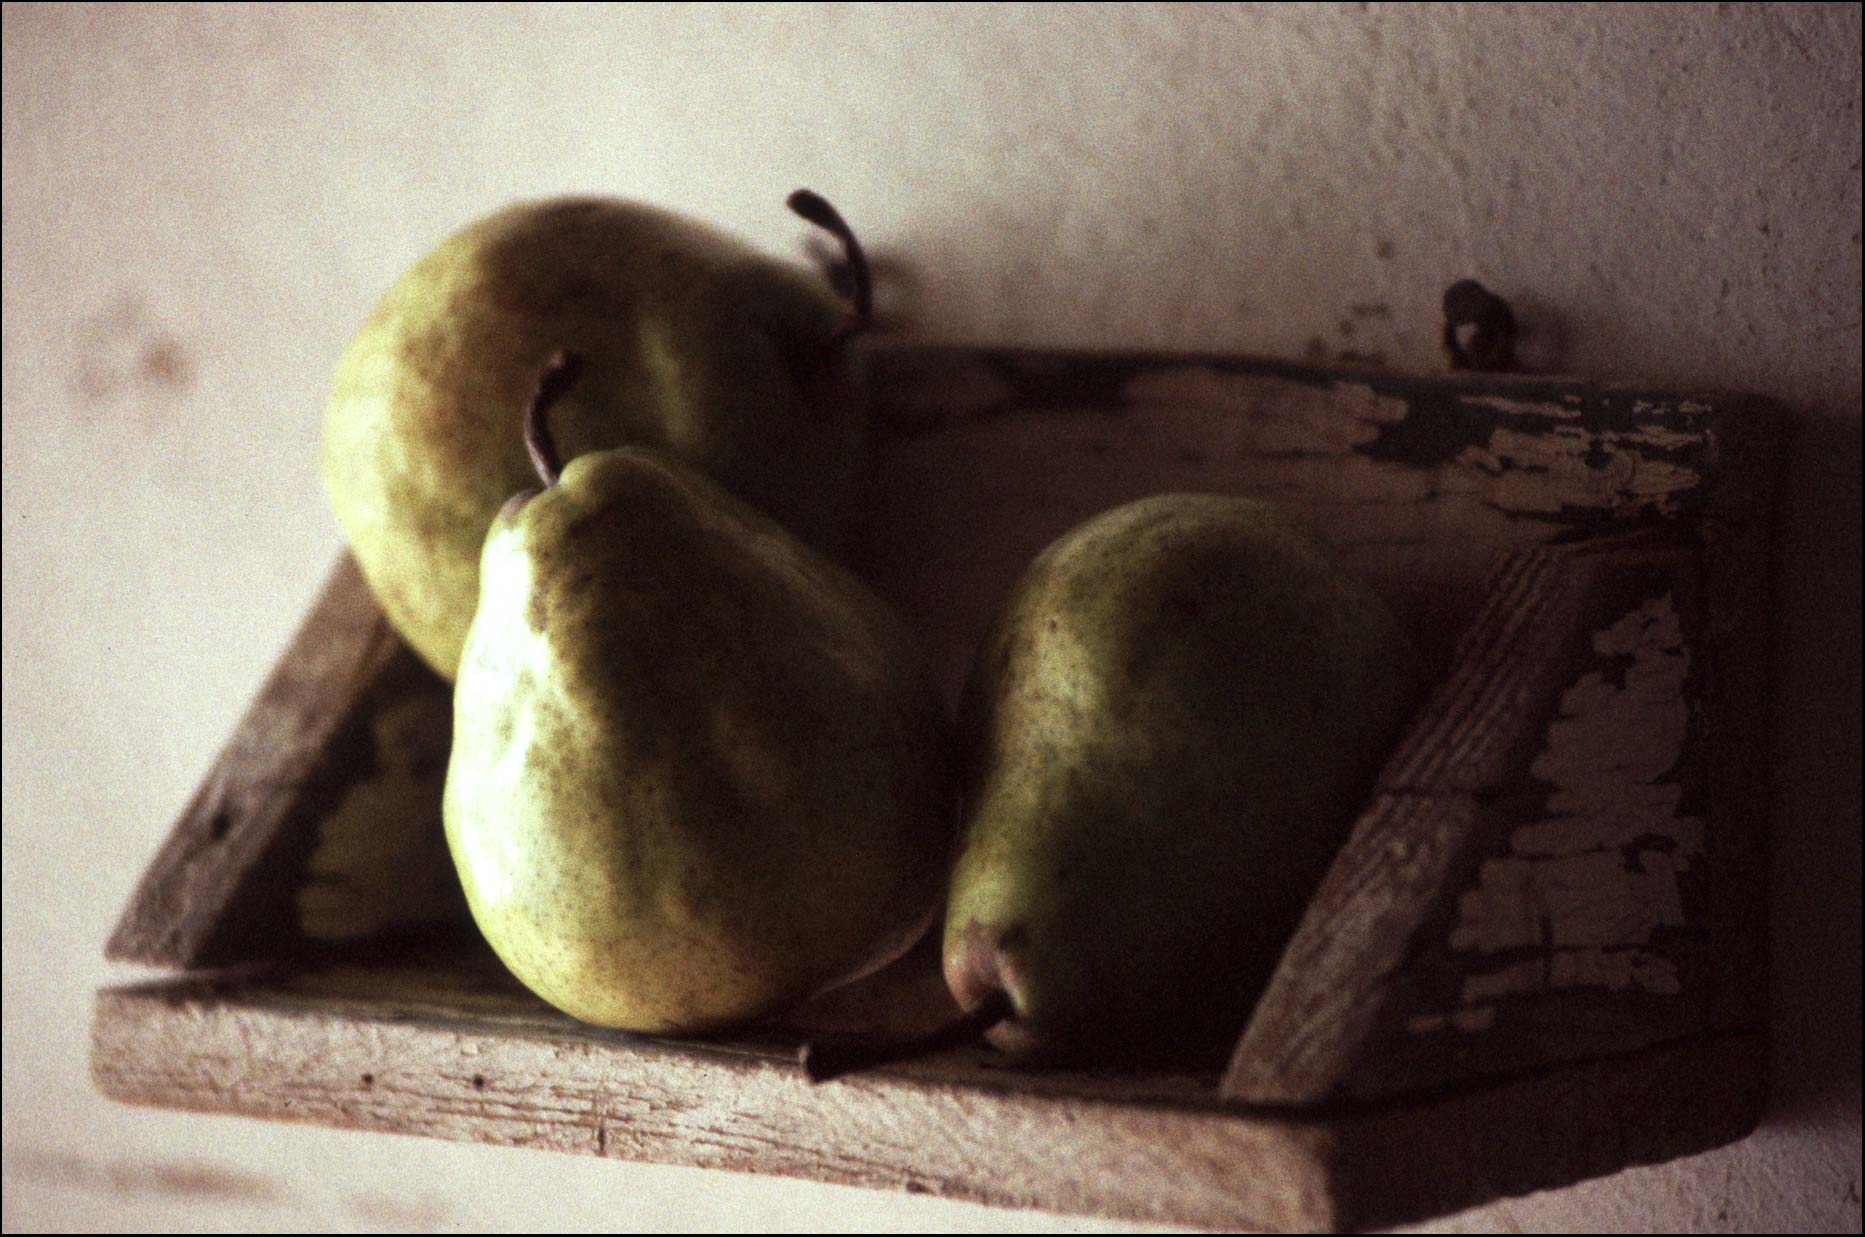 Pears on a shelf